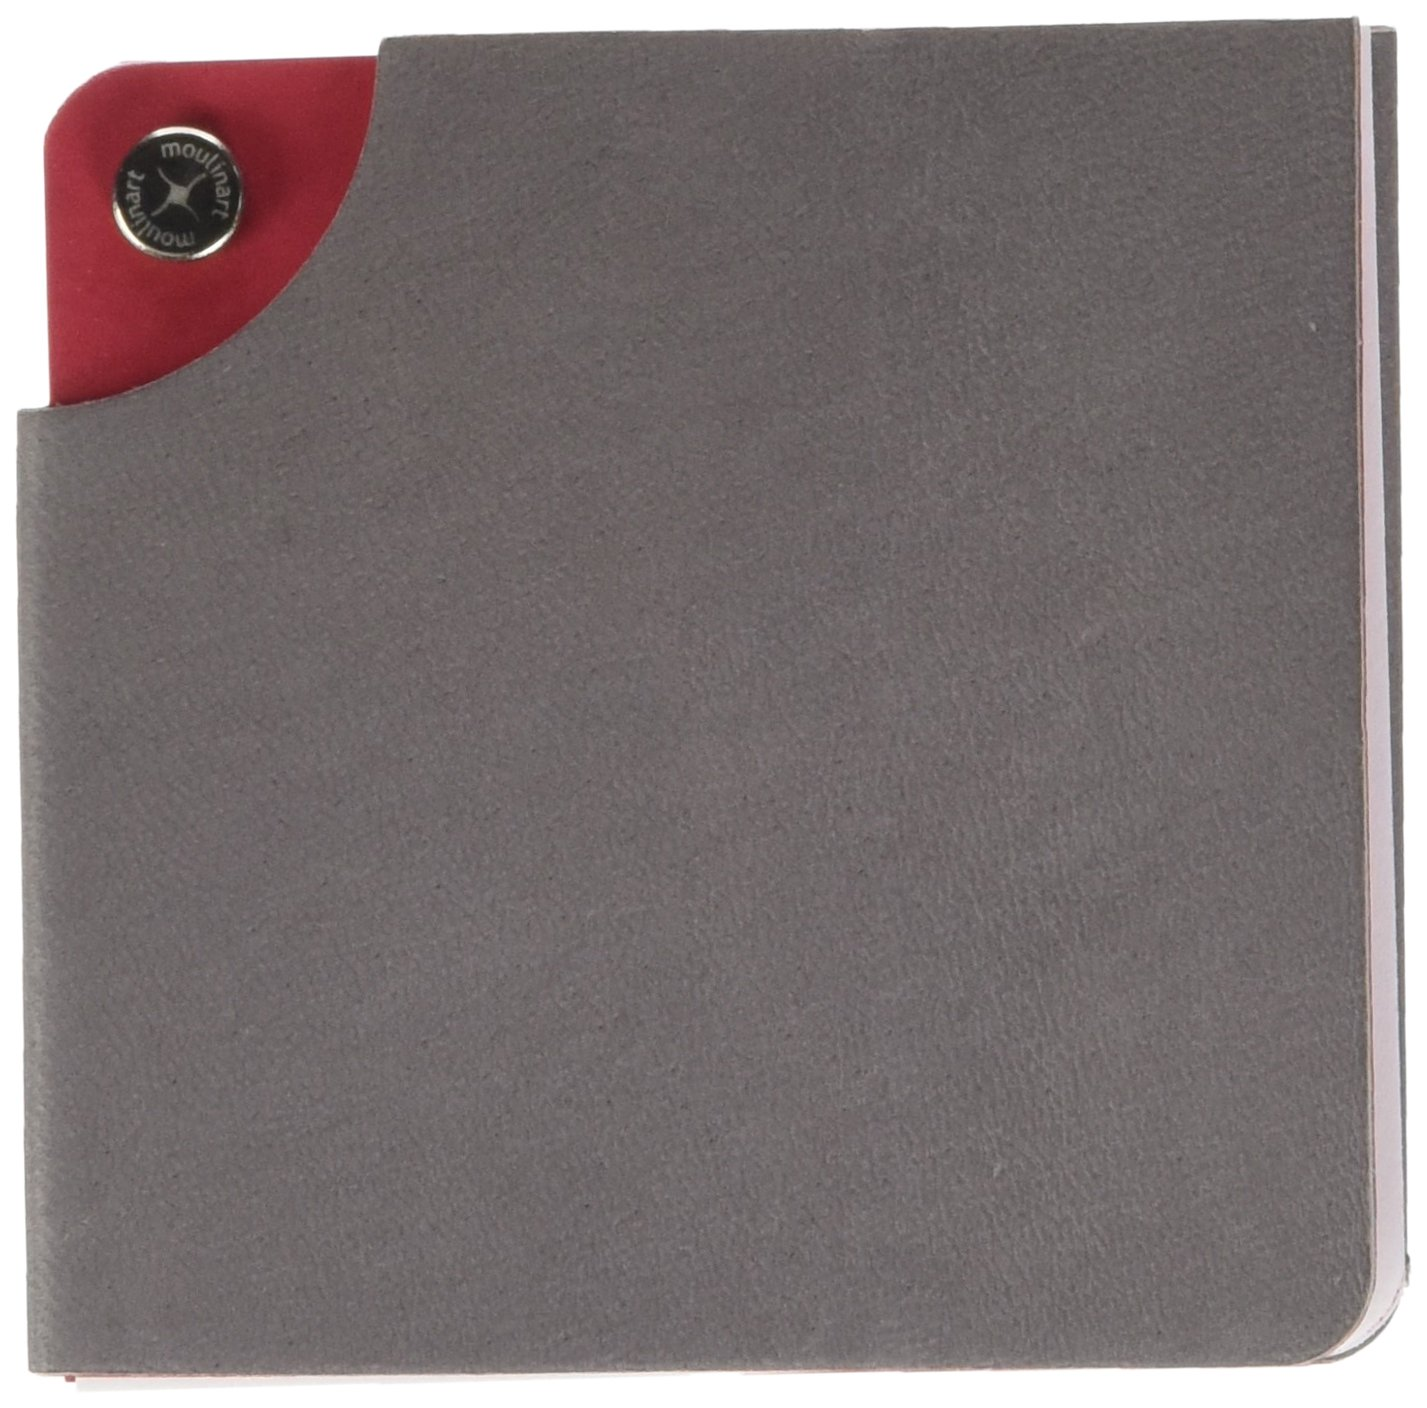 Estelle Moulinart Notes Leather Notepad 128 Pages 8.5 x 8.5 cm Grey